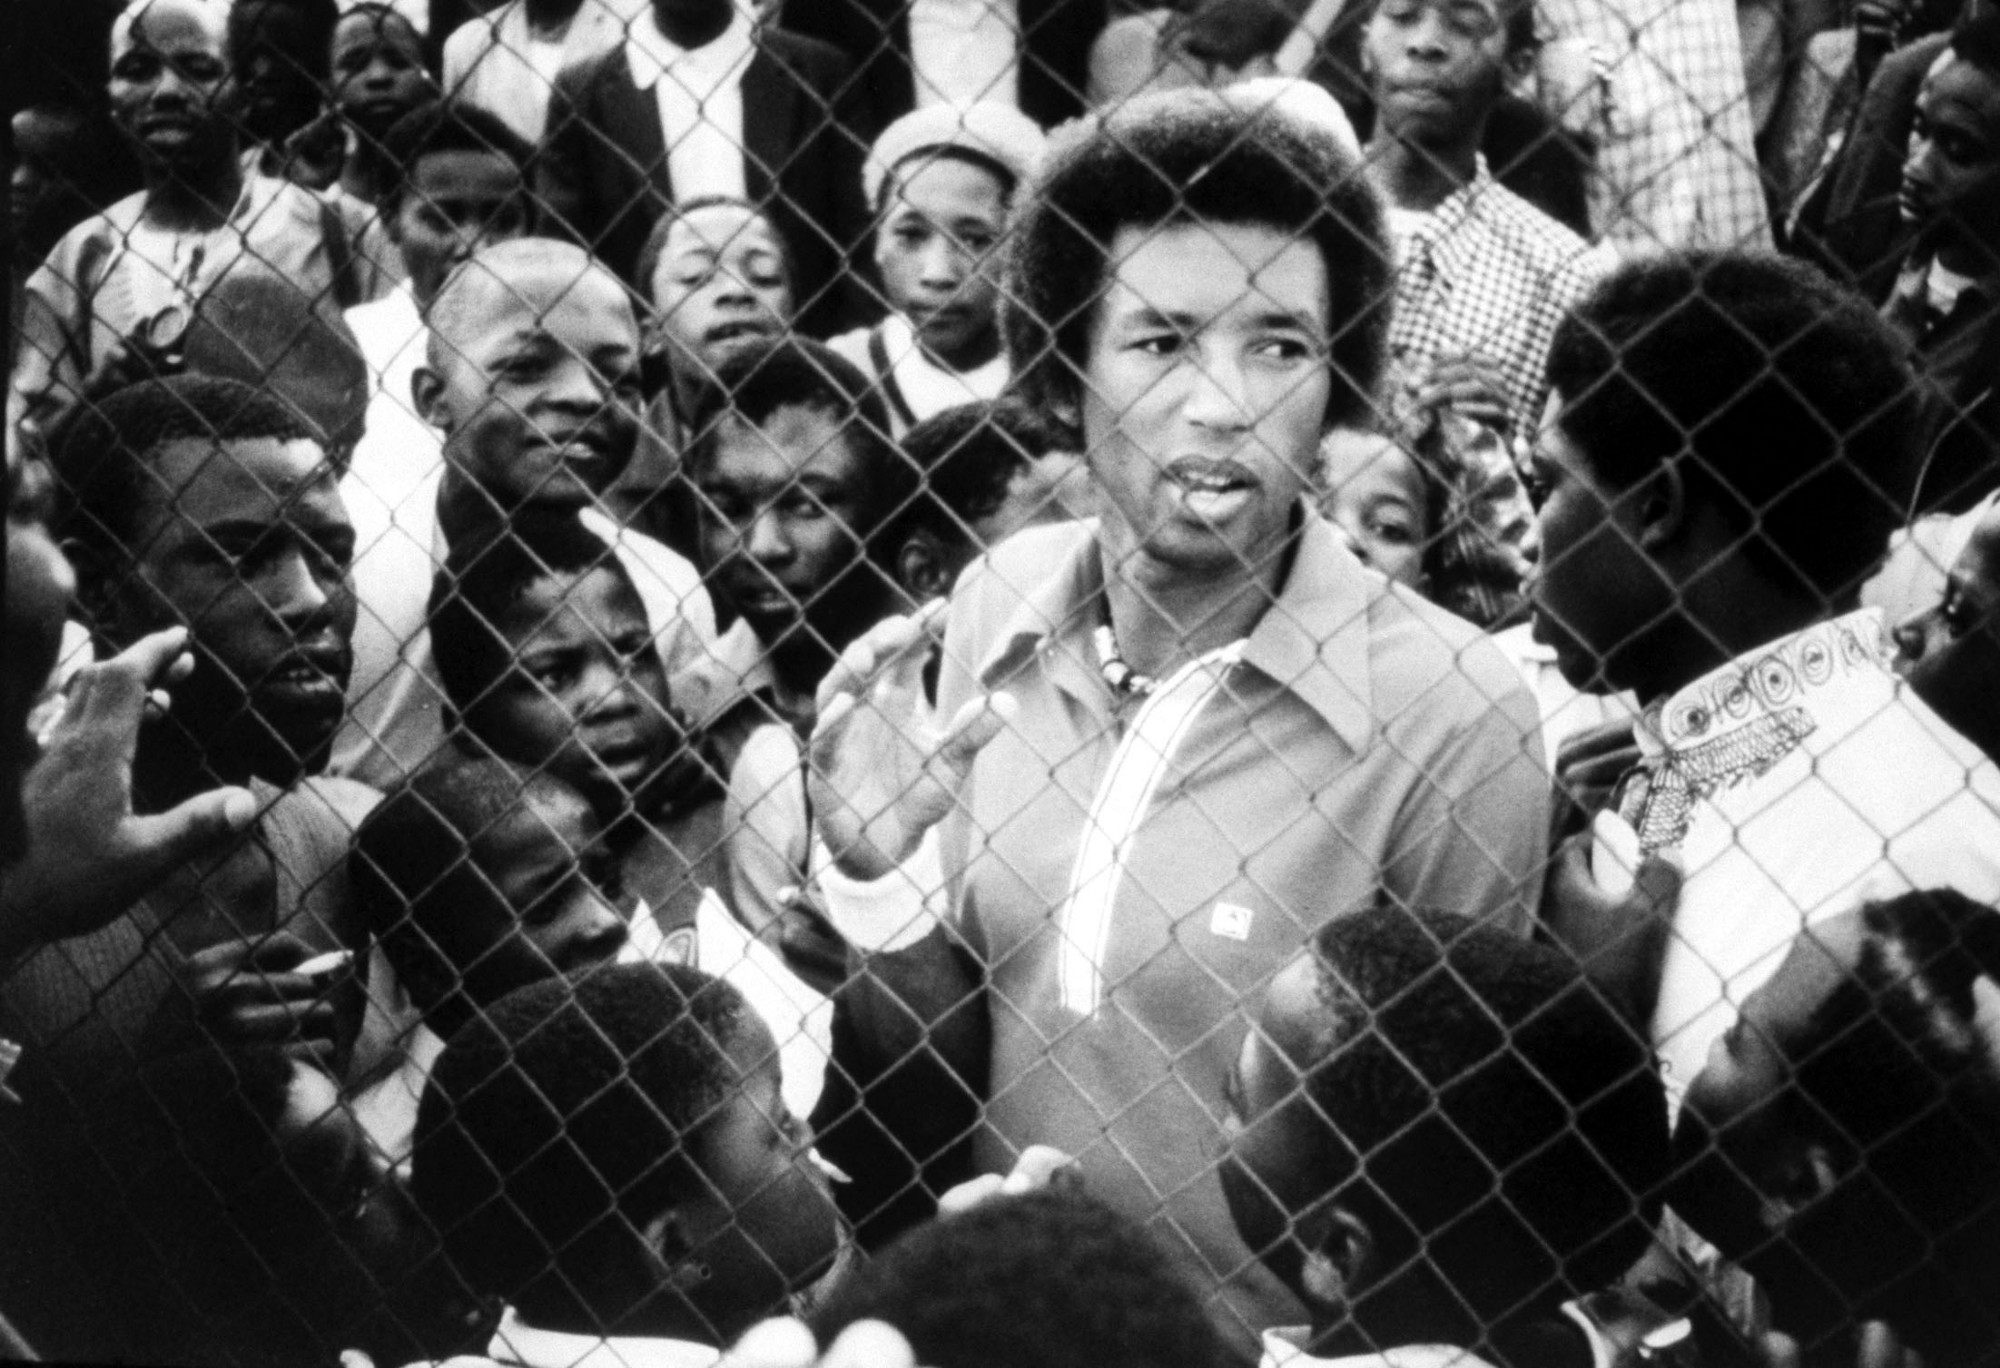 When Arthur Ashe fought to play tennis in apartheid South Africa